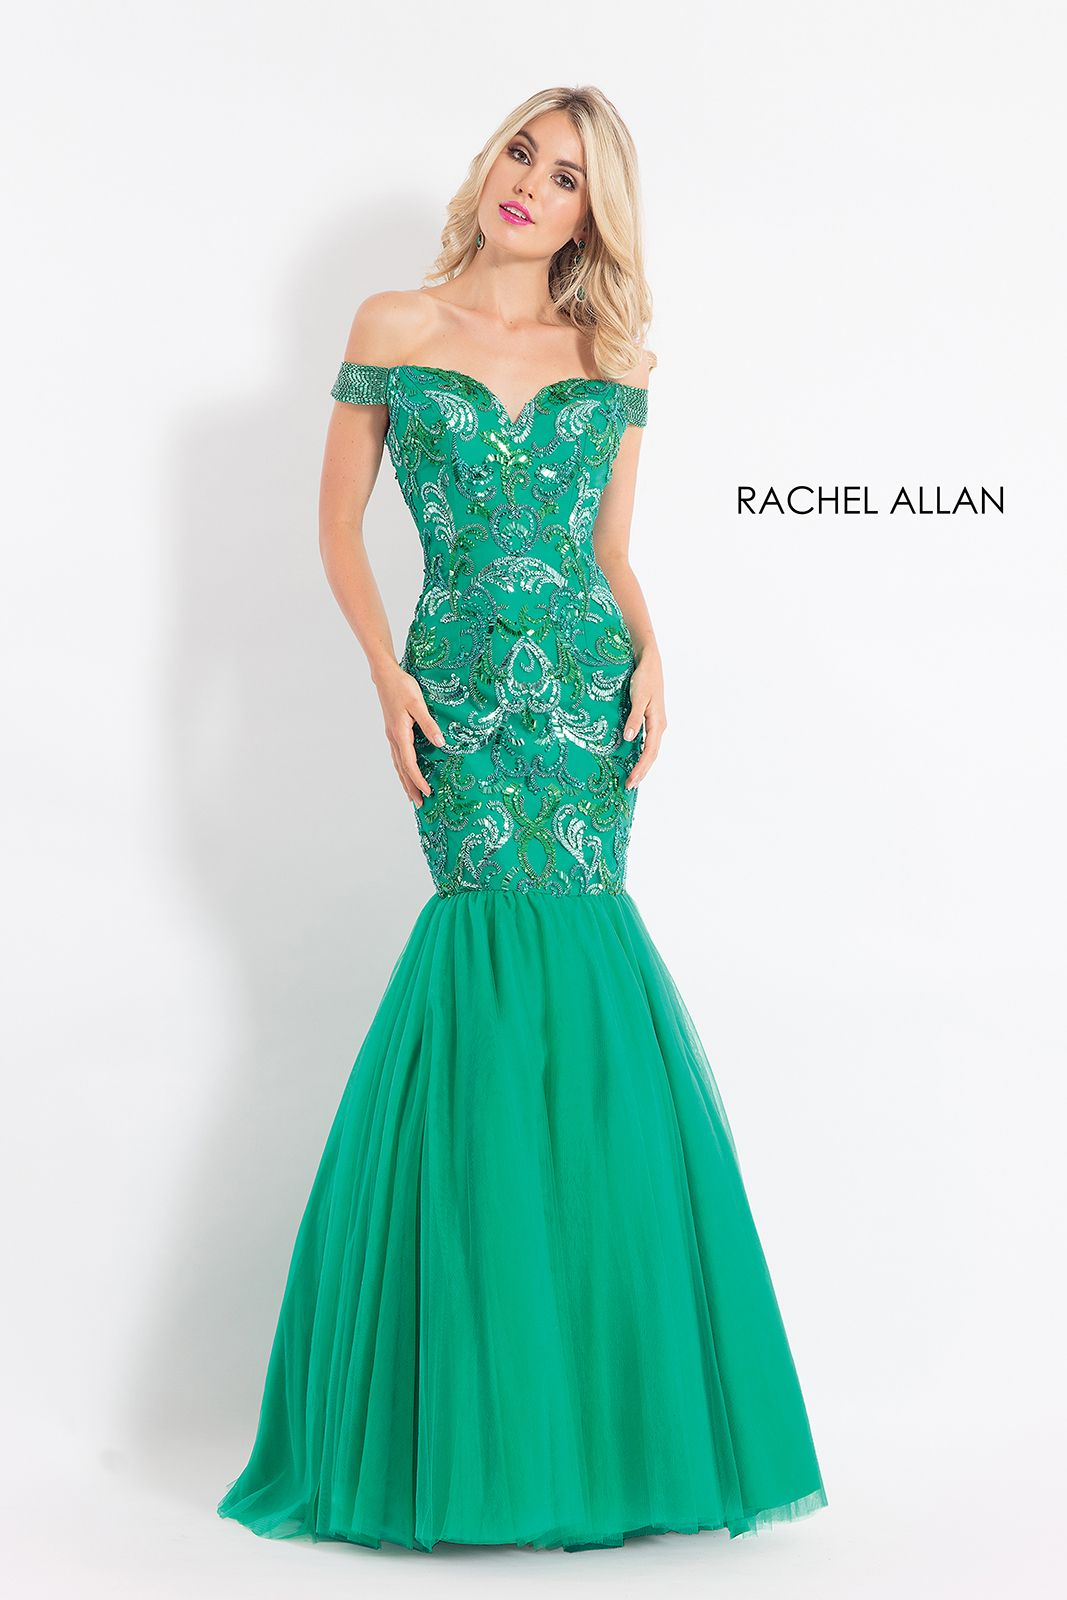 Emerald green prom dress 2018  Style  in Emerald  Sequin Dresses   Pinterest  Prom